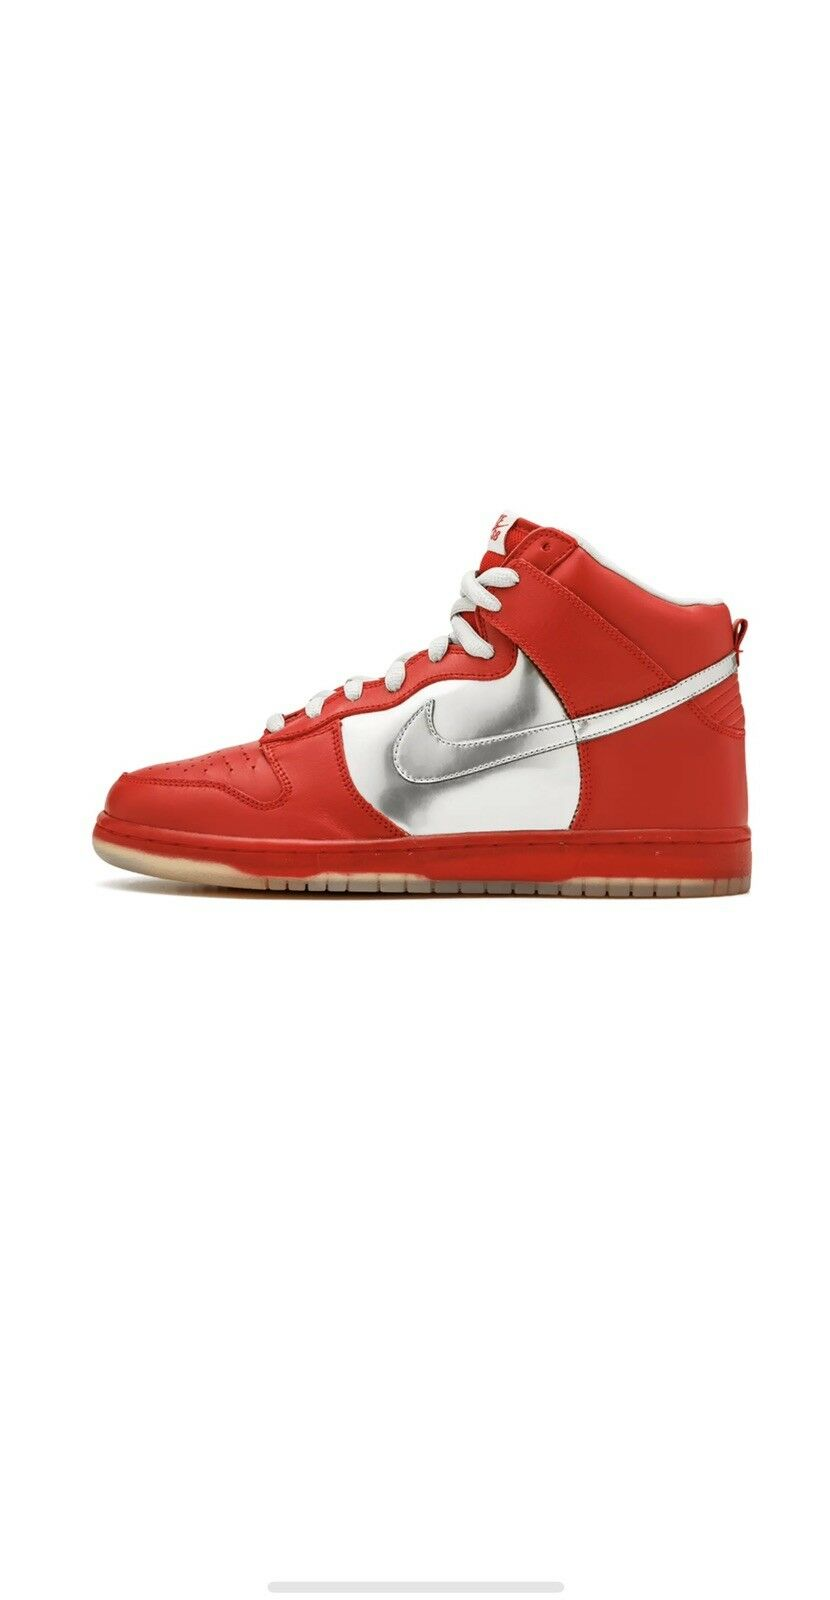 Nike SB Dunk  Mork and Mindy  Size 11 Varsity Red Chrome 313171-002 New